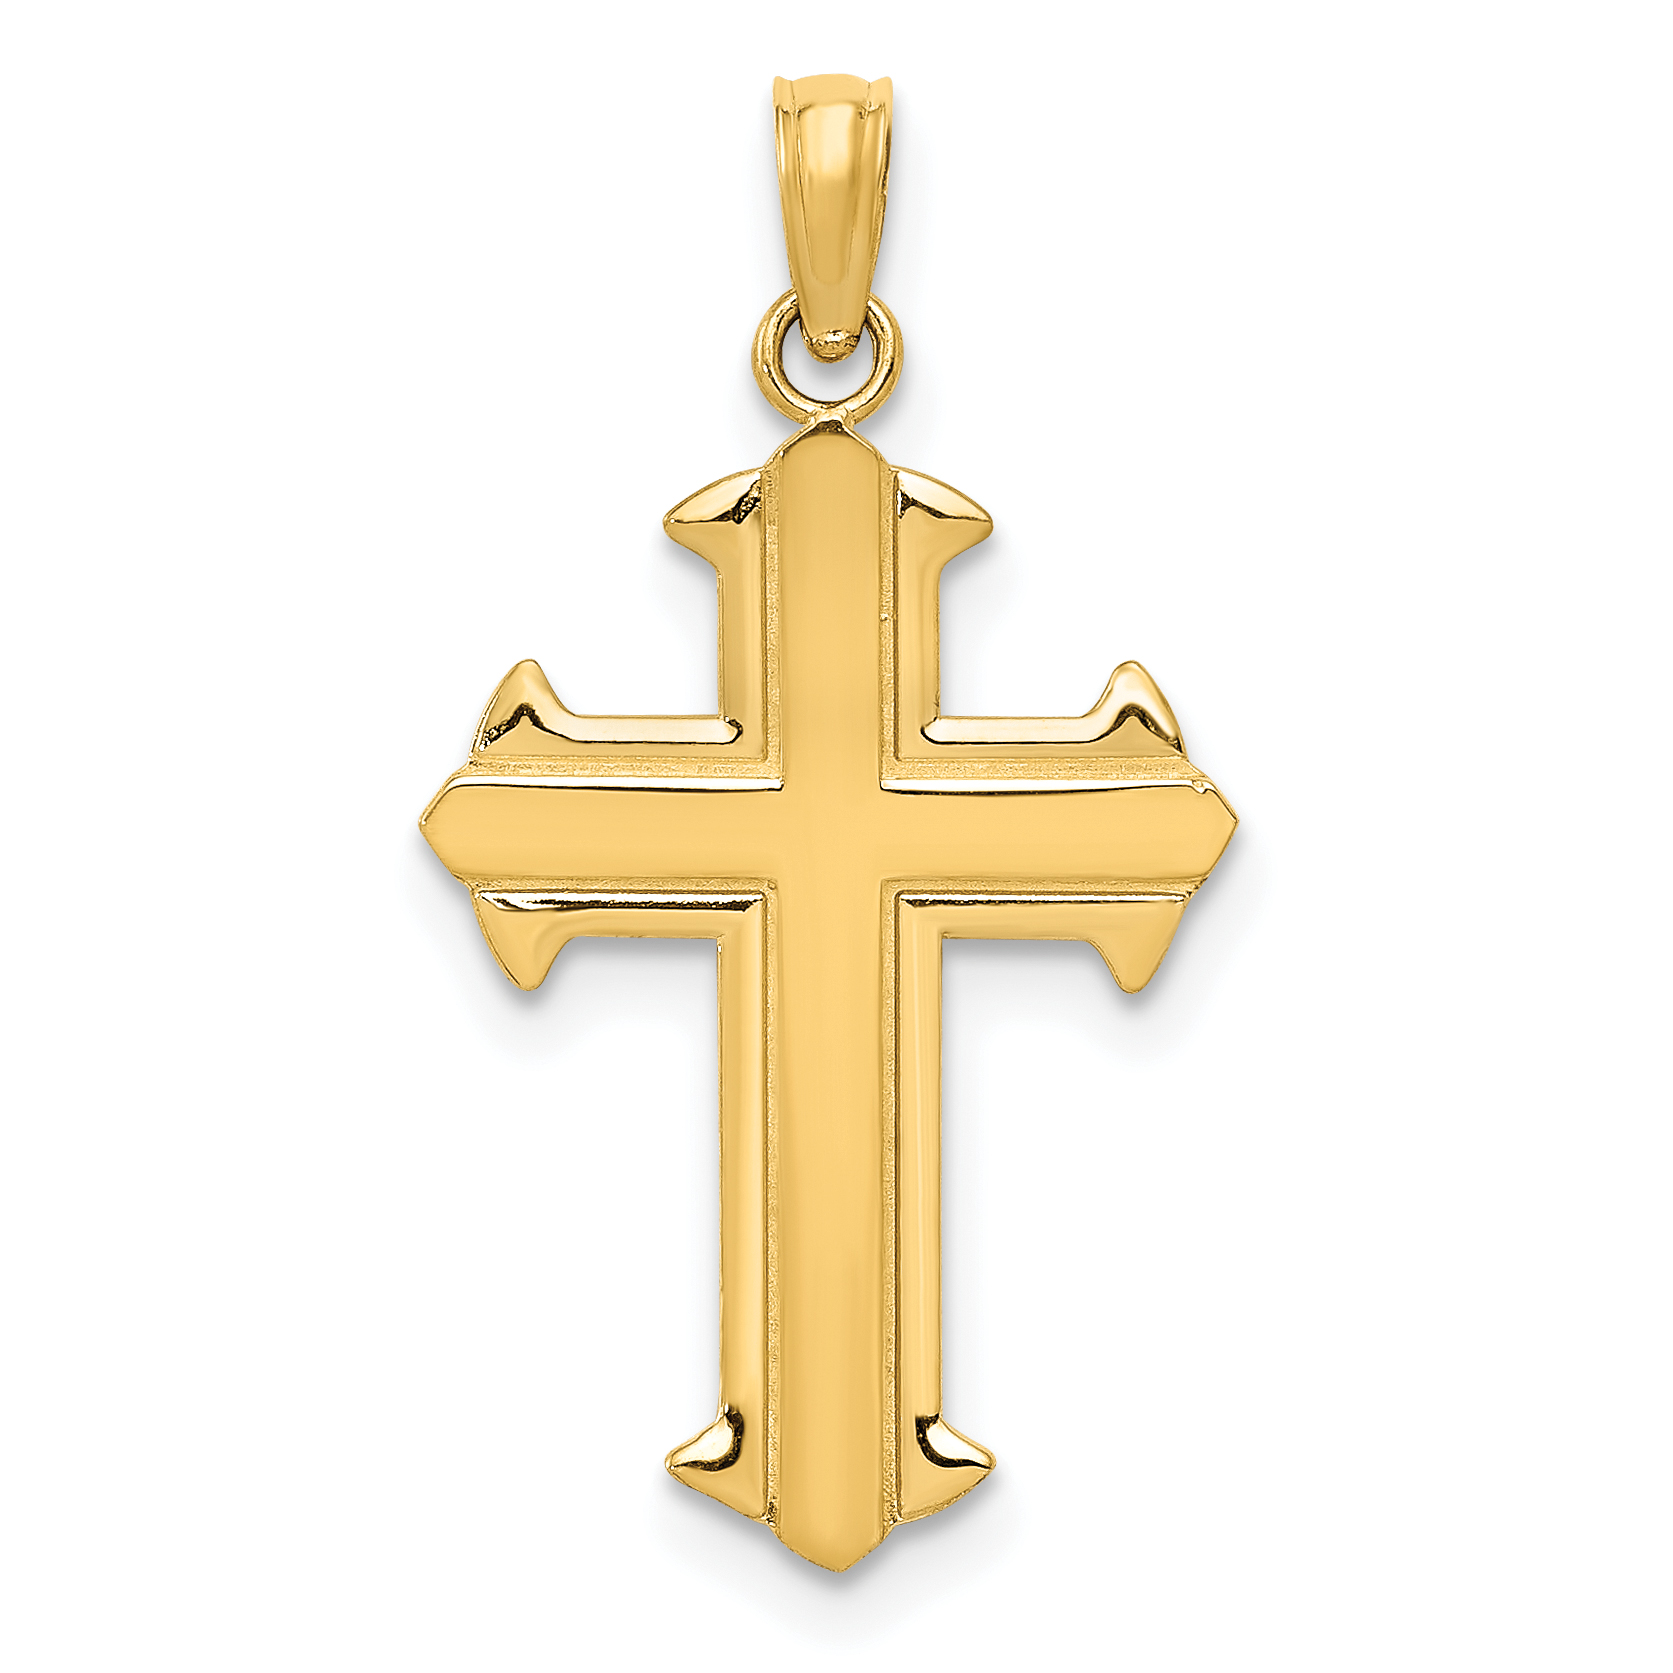 14k Yellow Gold Passion Cross Religious Pendant Charm Necklace Fine Jewelry Gifts For Women For Her - image 2 de 2